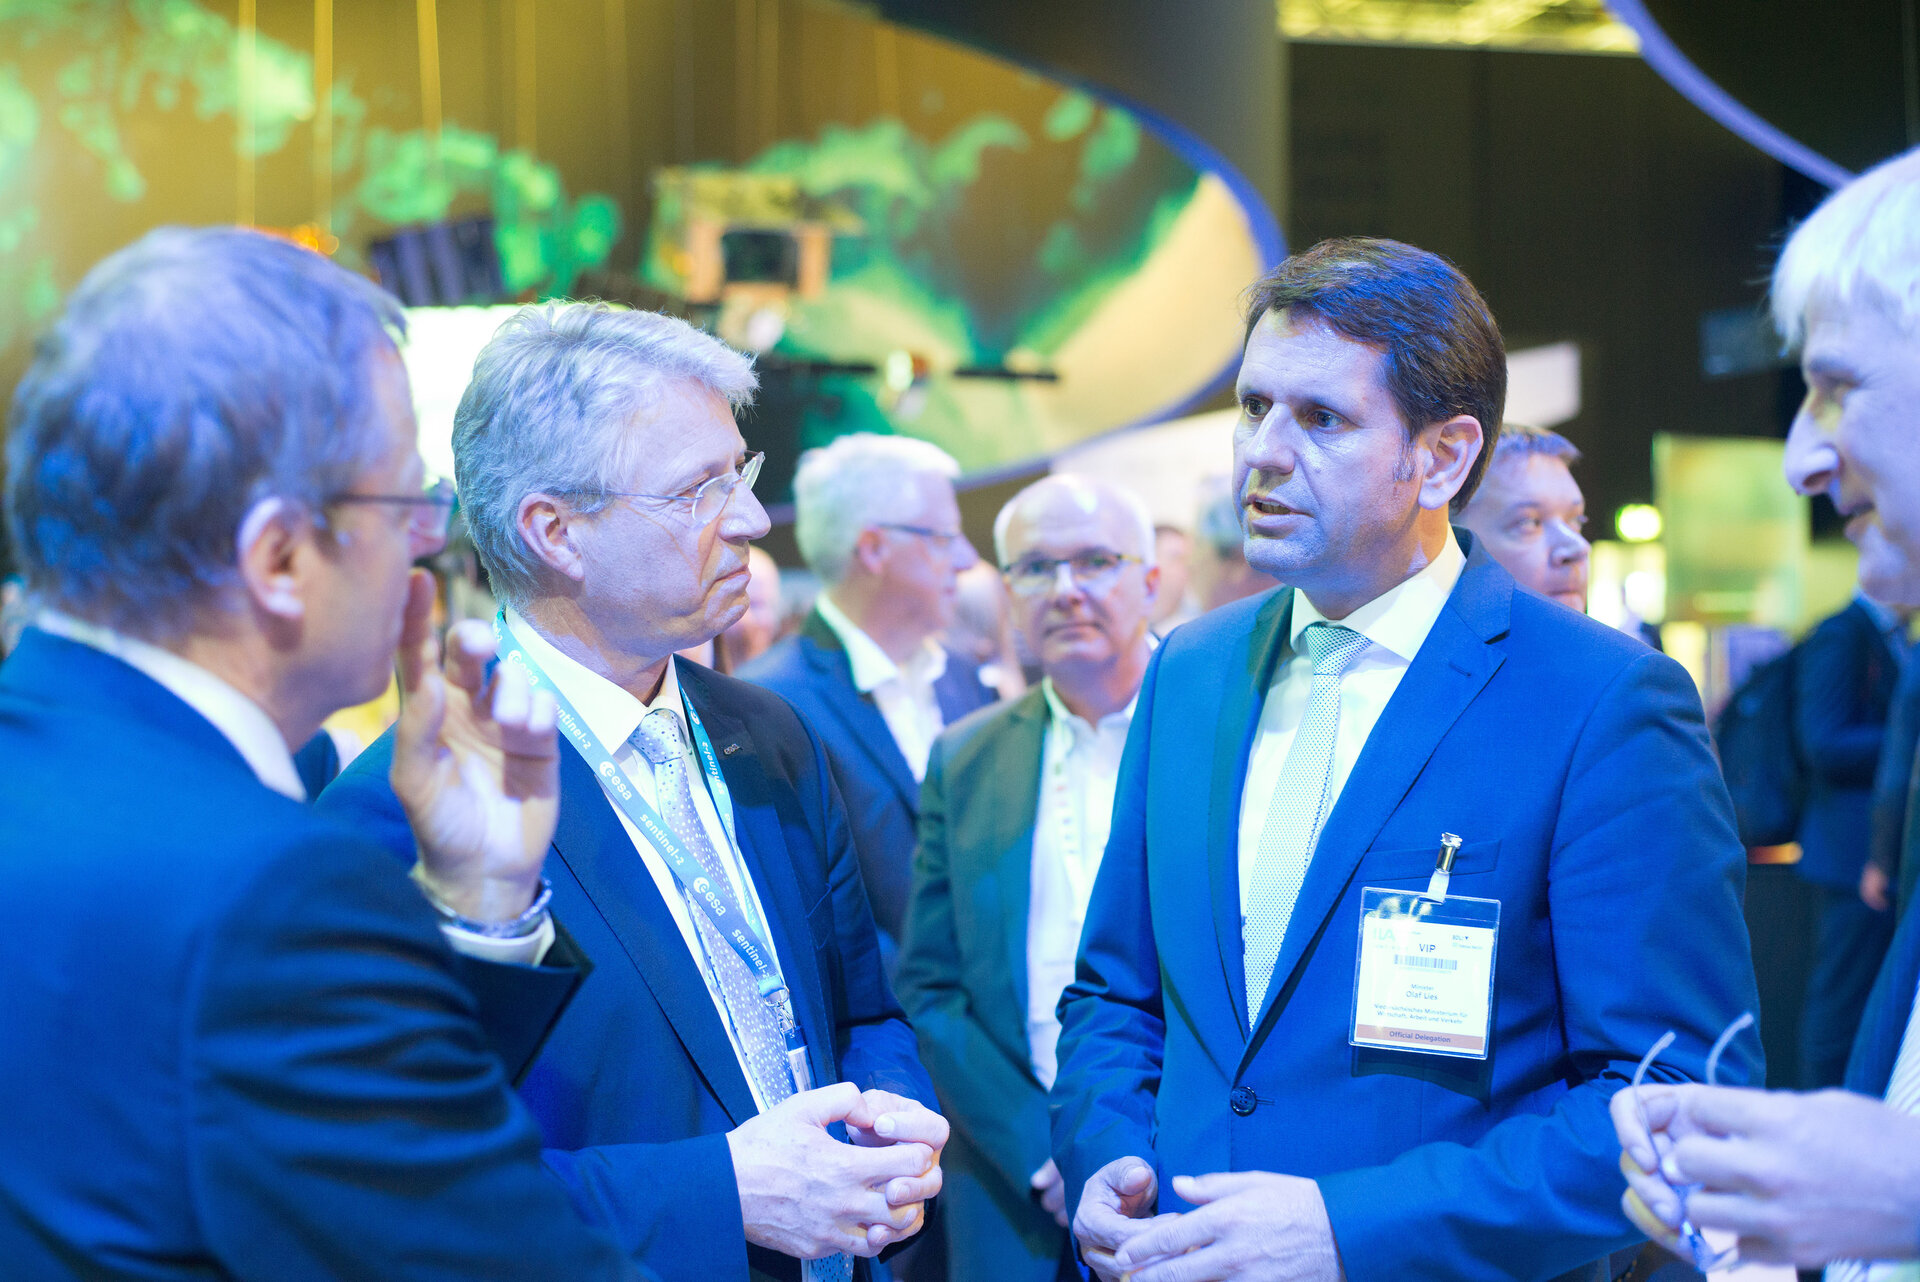 Minister Olef Lies visits with Jan Wörner and Thomas Reiter